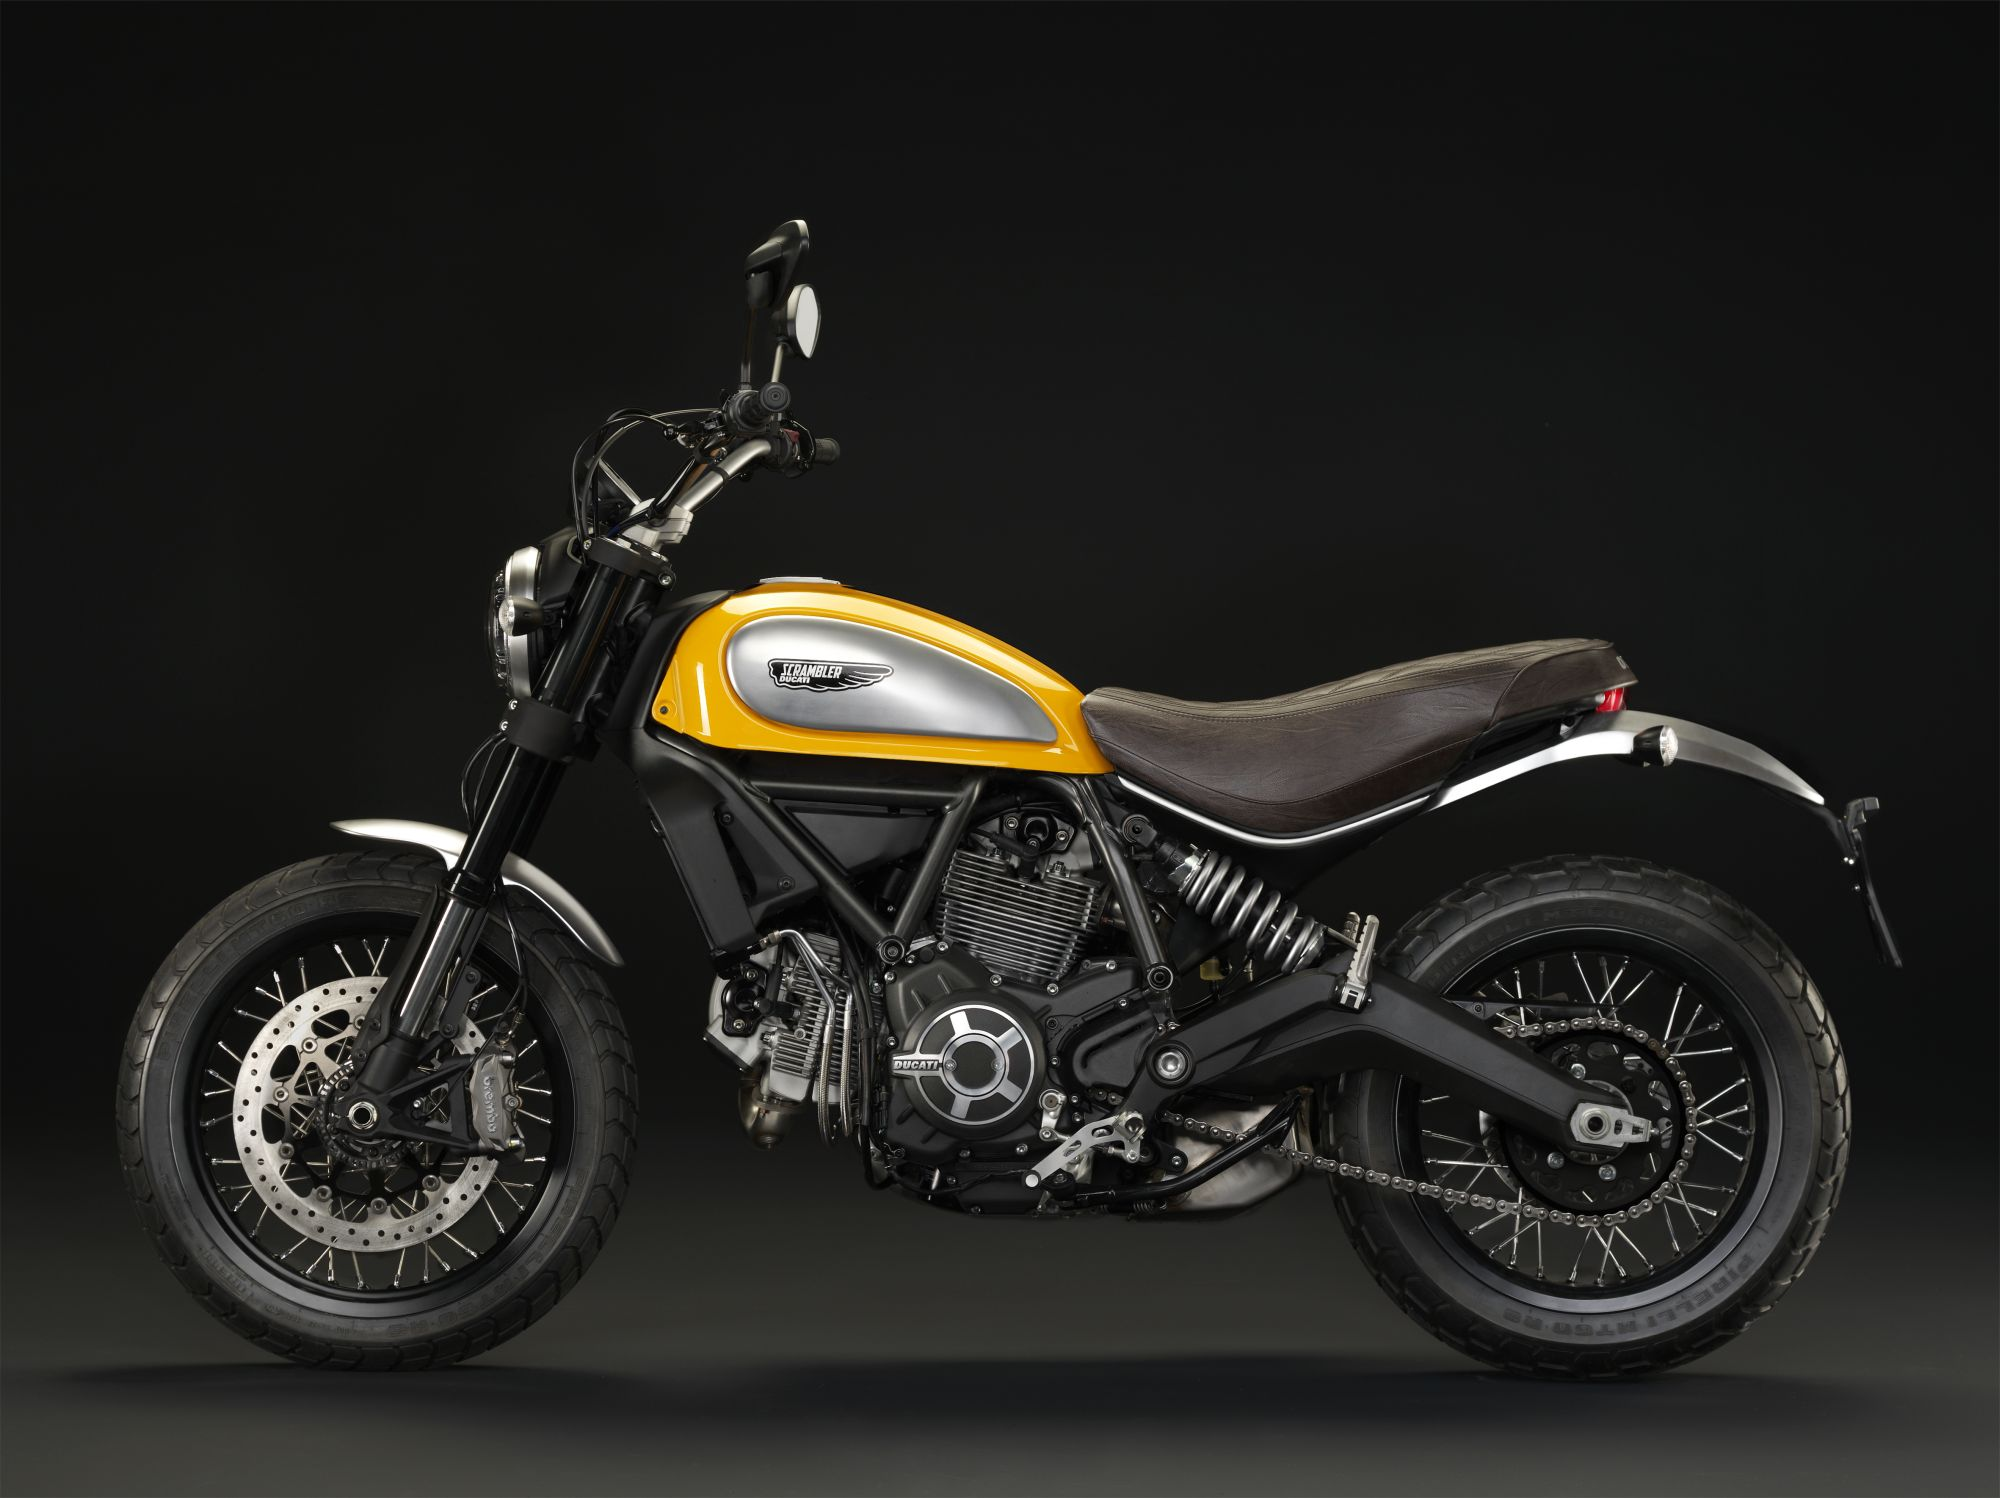 ducati scrambler classic 2016 online kaufen. Black Bedroom Furniture Sets. Home Design Ideas